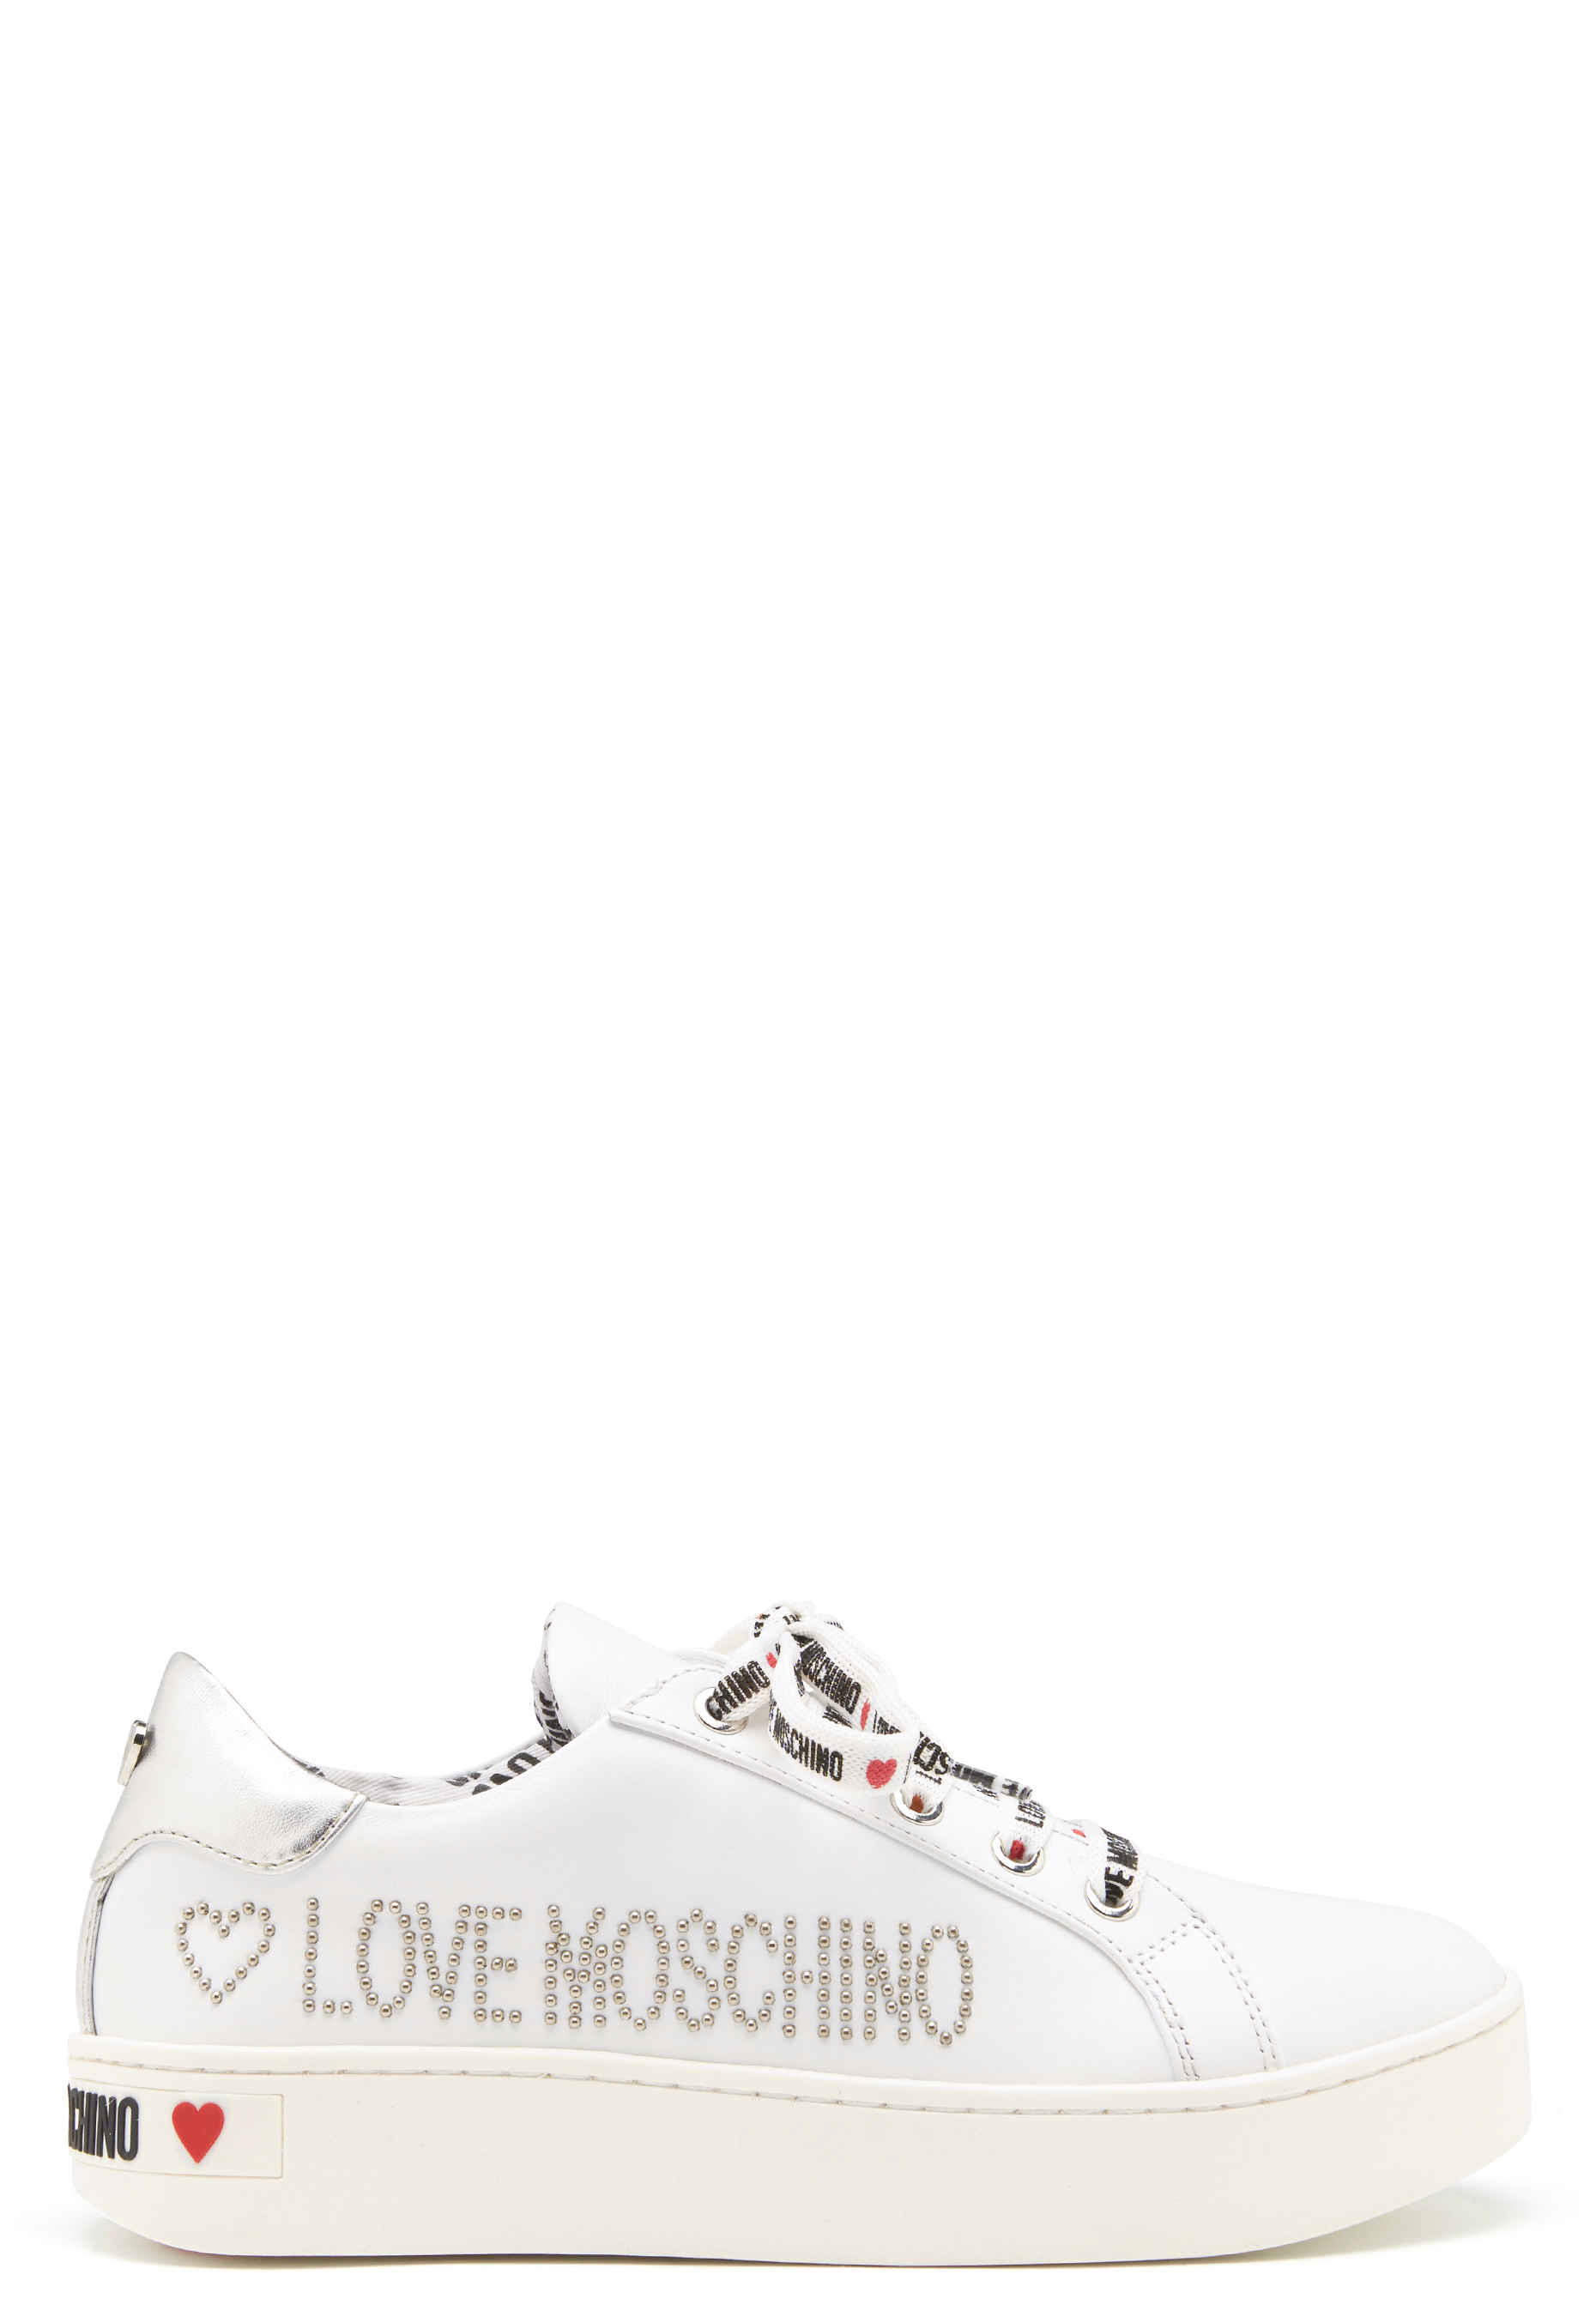 Love Moschino Moschino Leather Sneakers White Bubbleroom